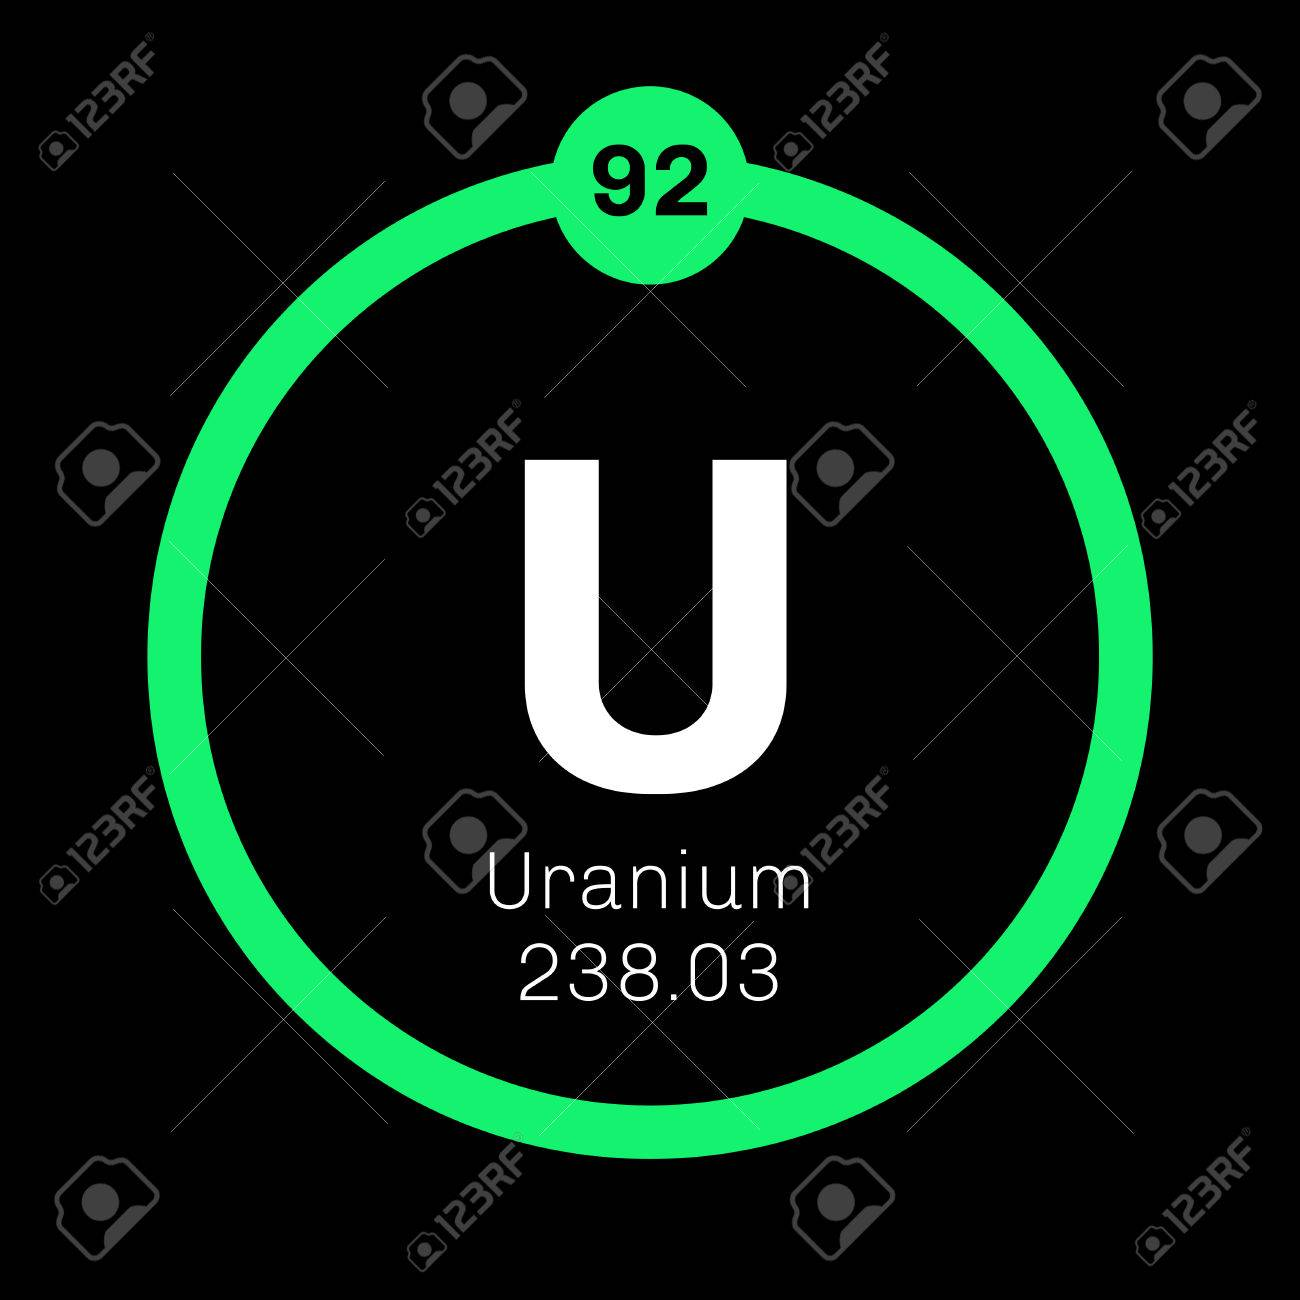 Uranium chemical element uranium is weakly radioactive metal uranium chemical element uranium is weakly radioactive metal colored icon with atomic number and urtaz